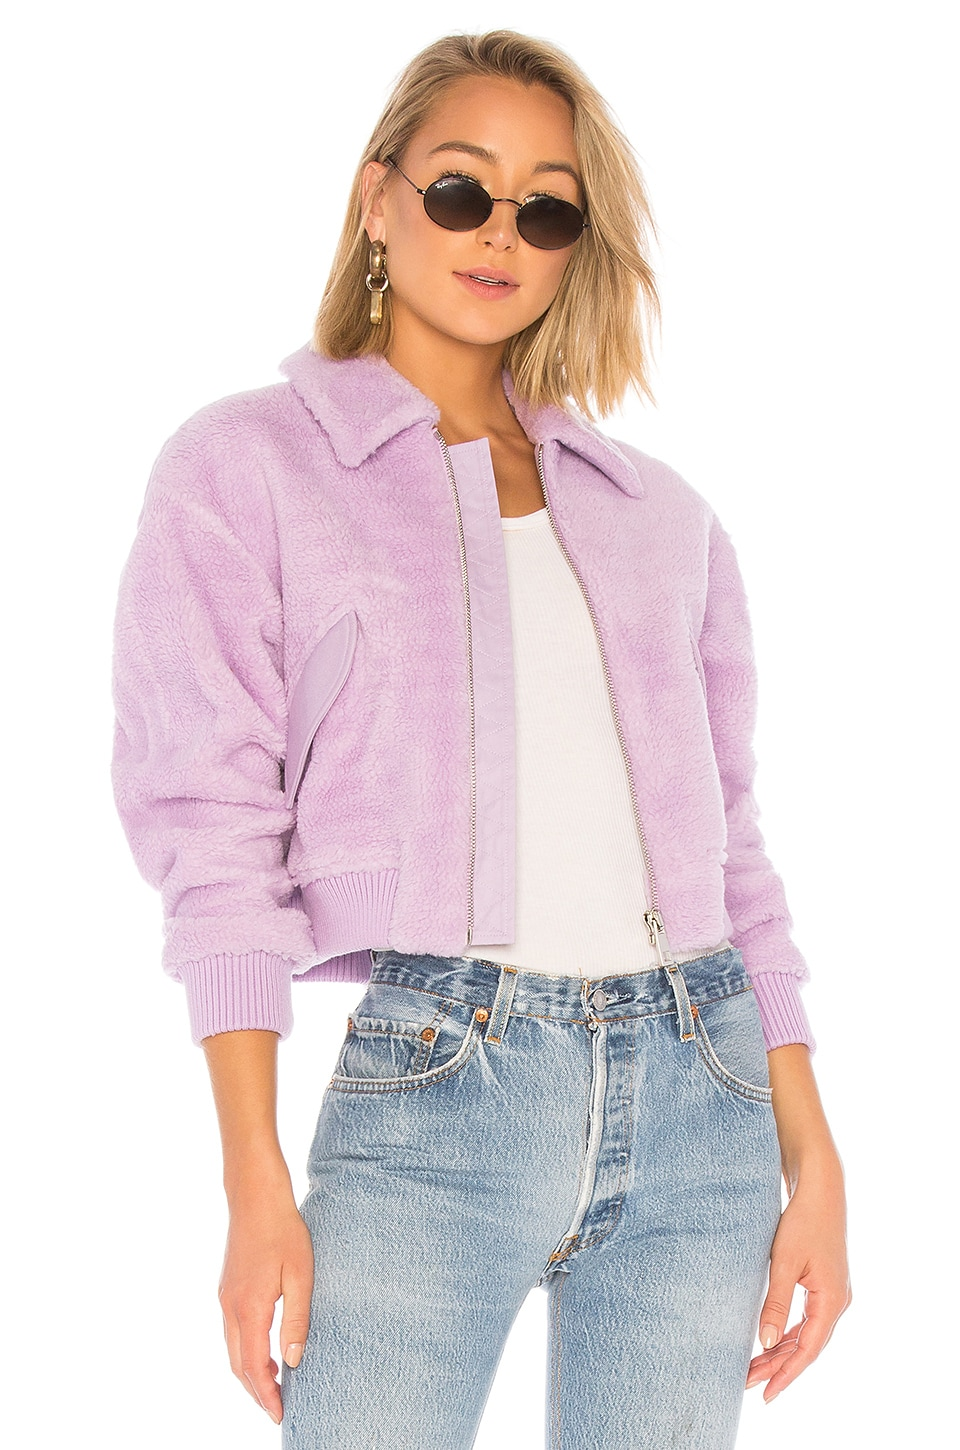 Tibi Faux Shearling Gus Cropped Jacket in Lavender